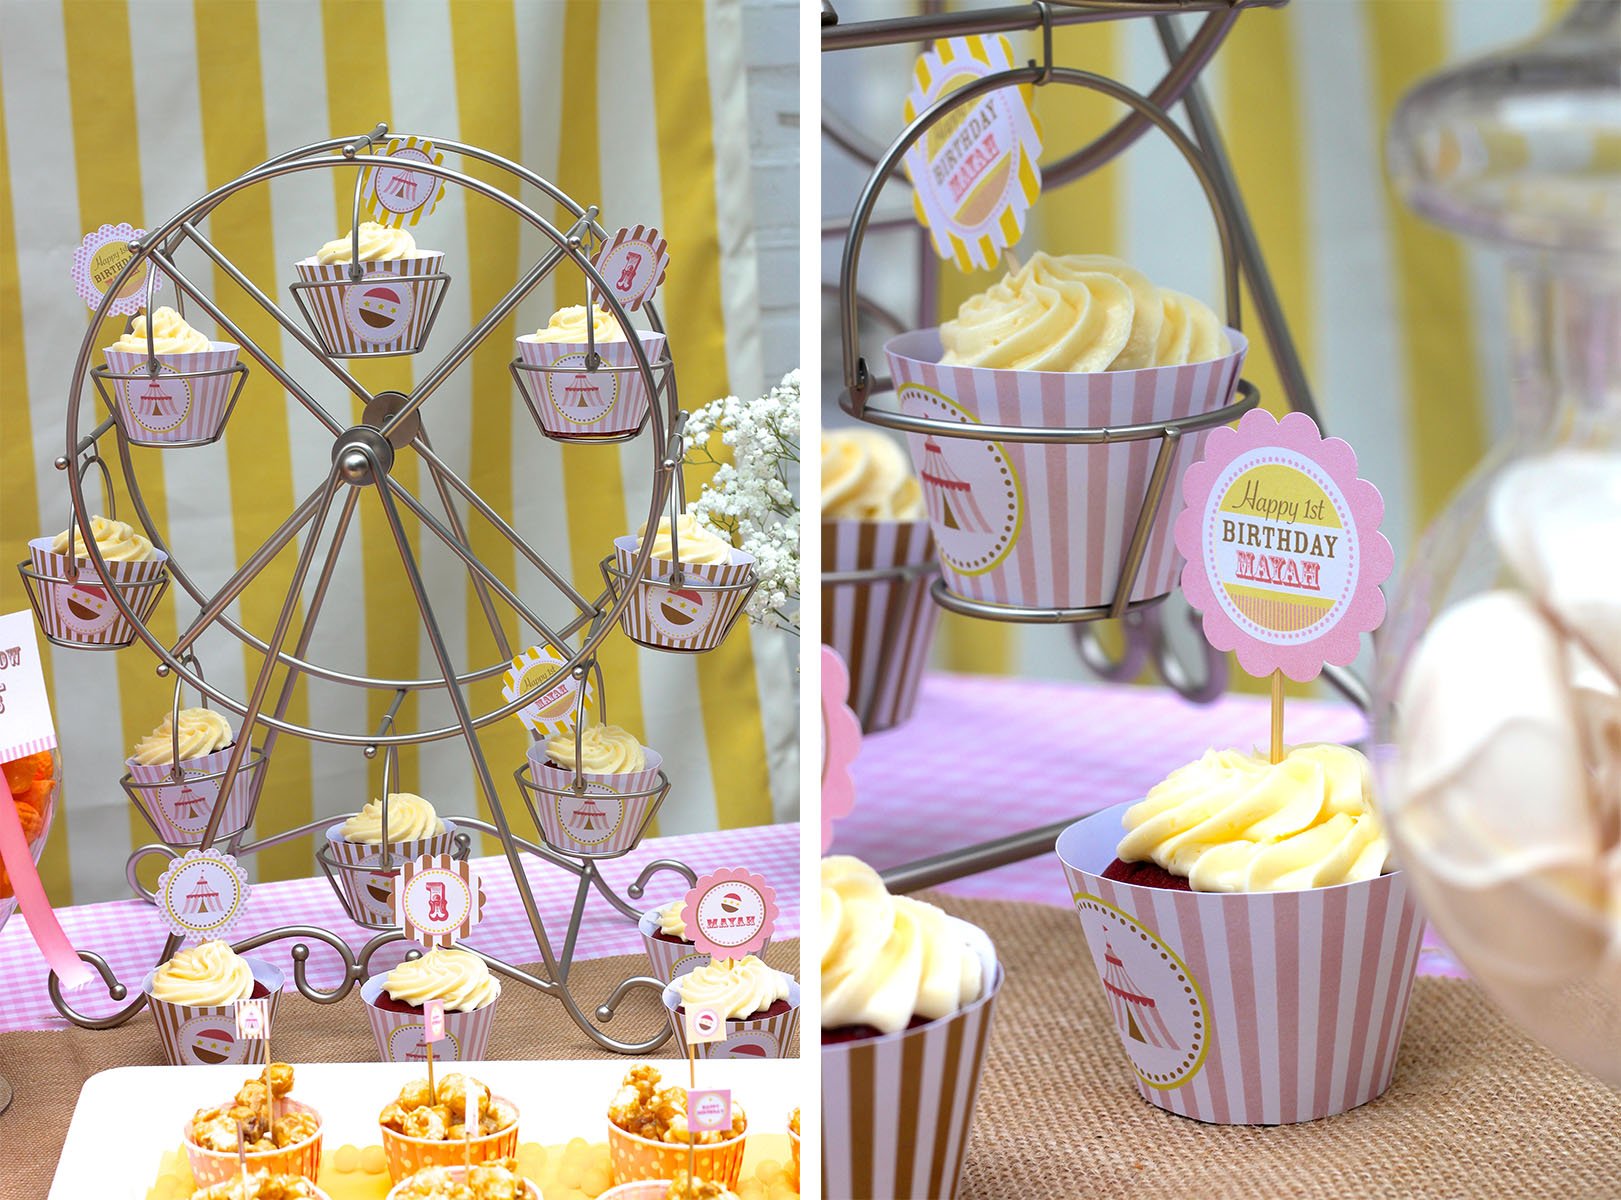 Stylish Wheel Cupcake Server